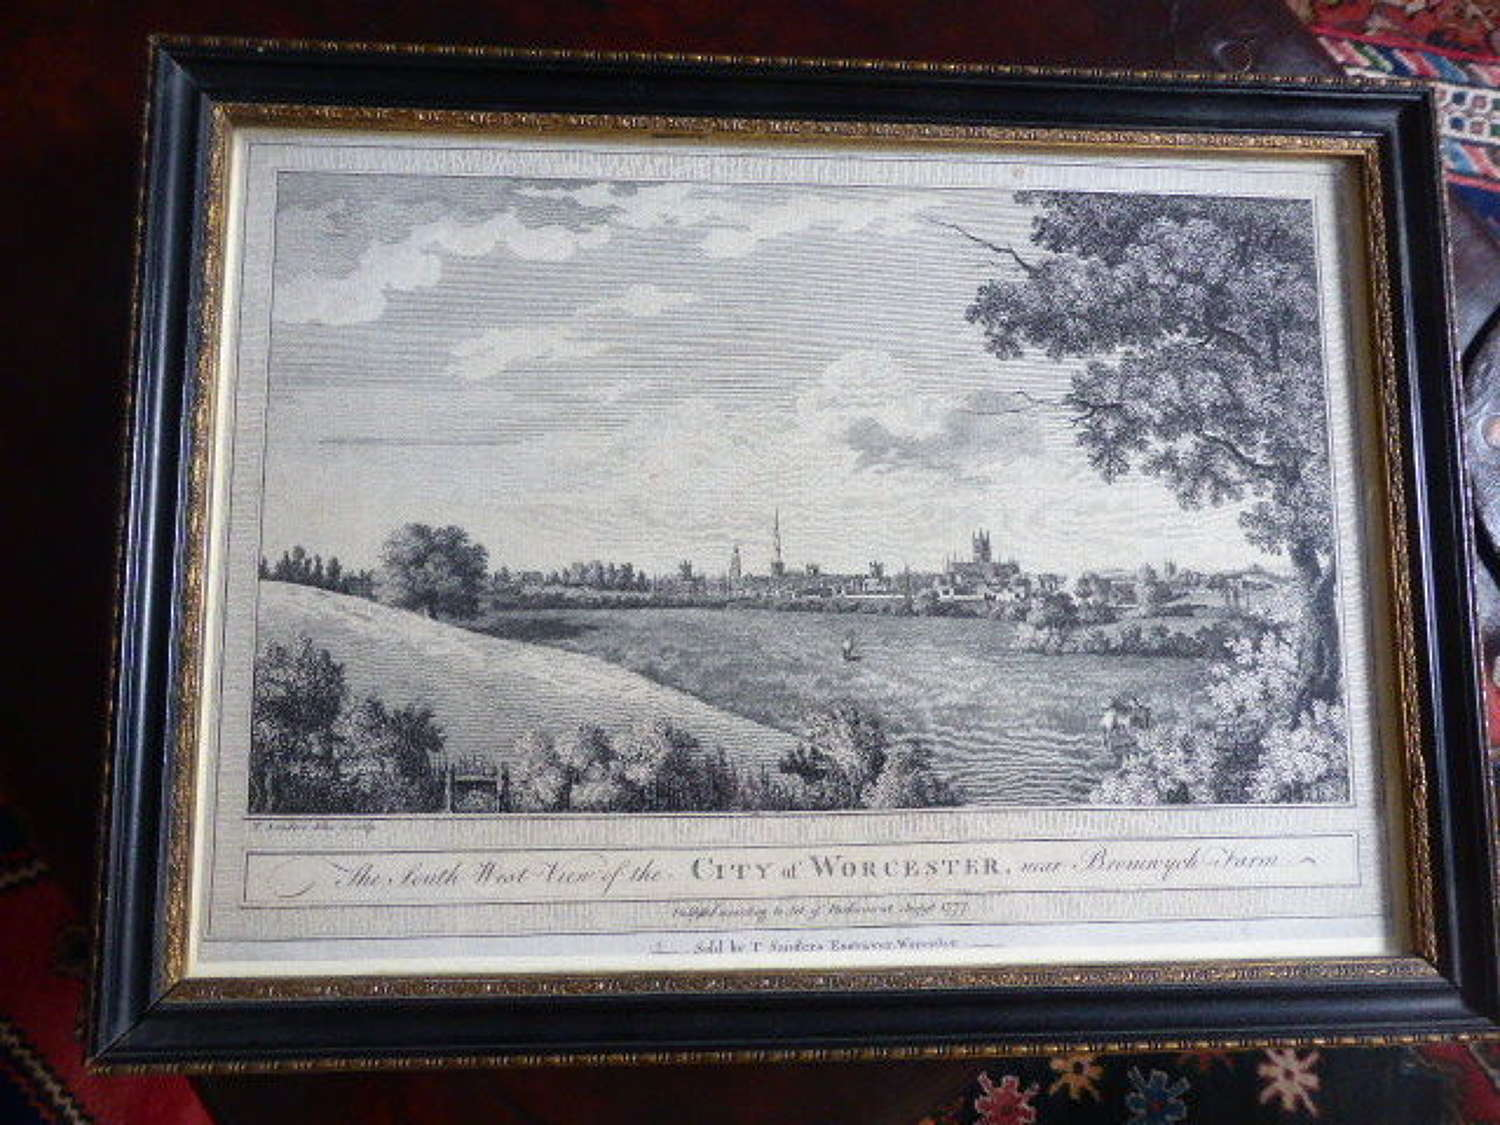 The South West View of the City of Worcester. 1777